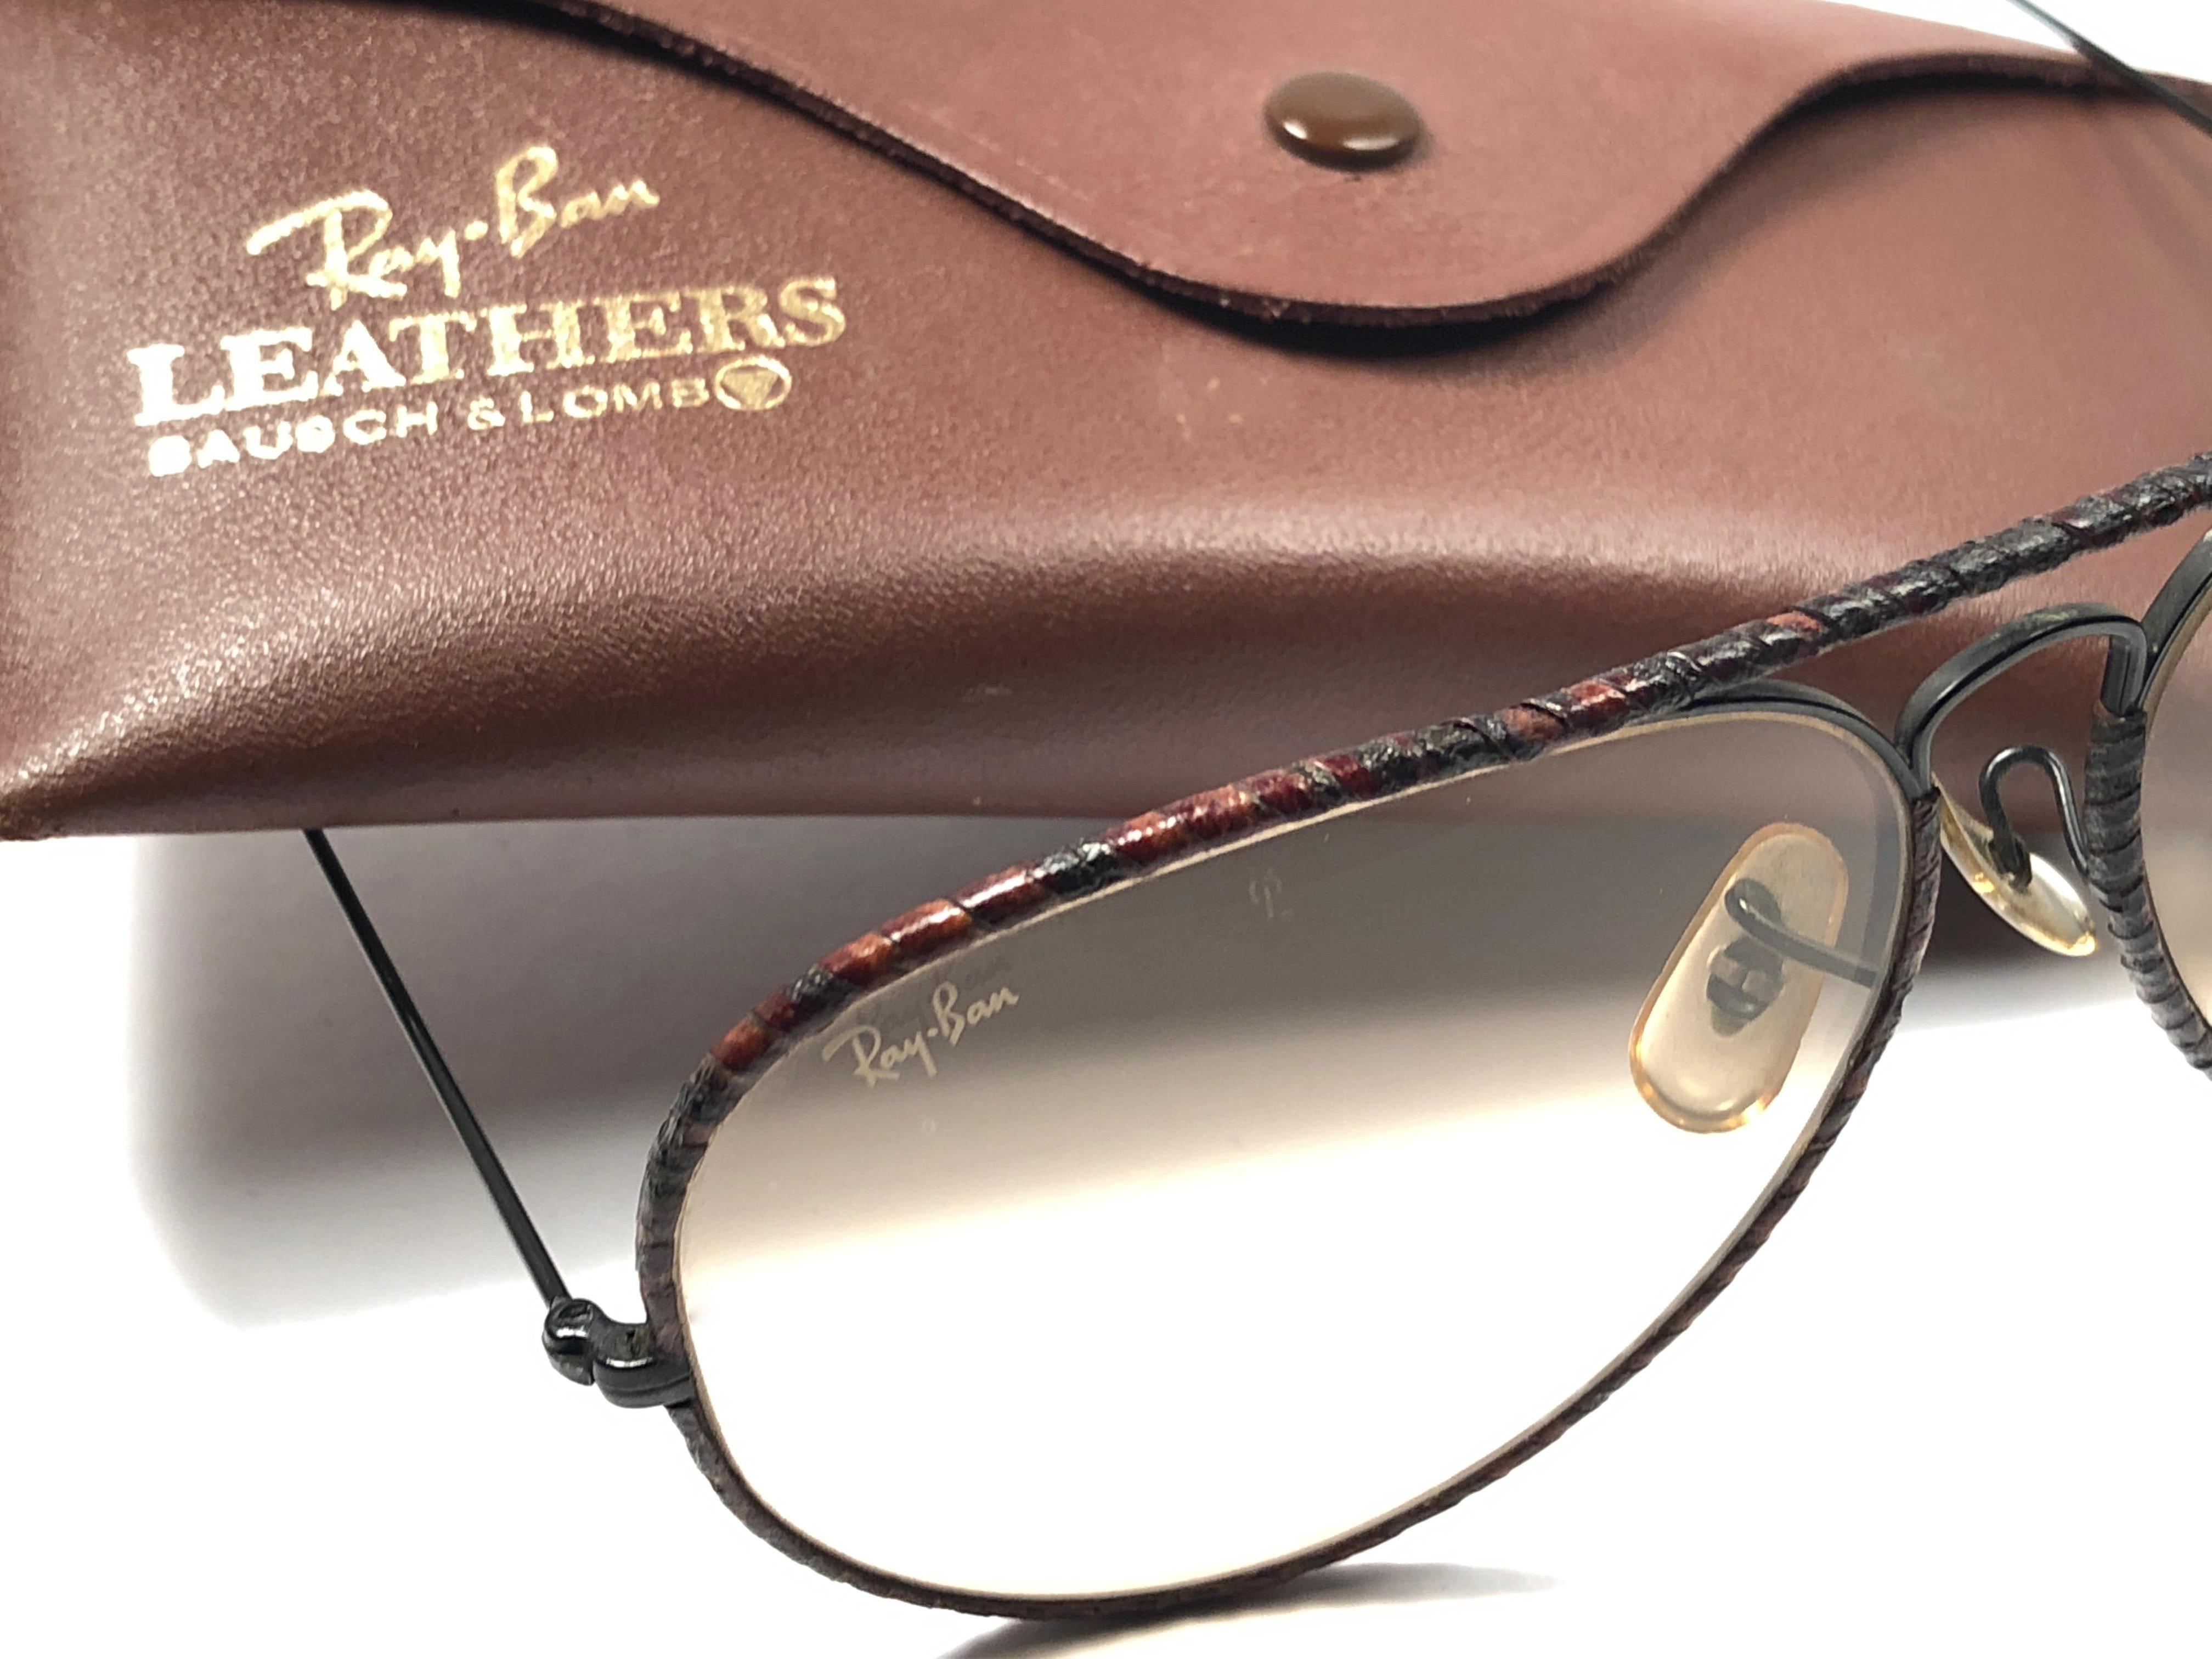 7d24bb68ff Vintage Ray Ban Burnt Tobacco Leathers Aviator 62MM B L Sunglasses For Sale  at 1stdibs